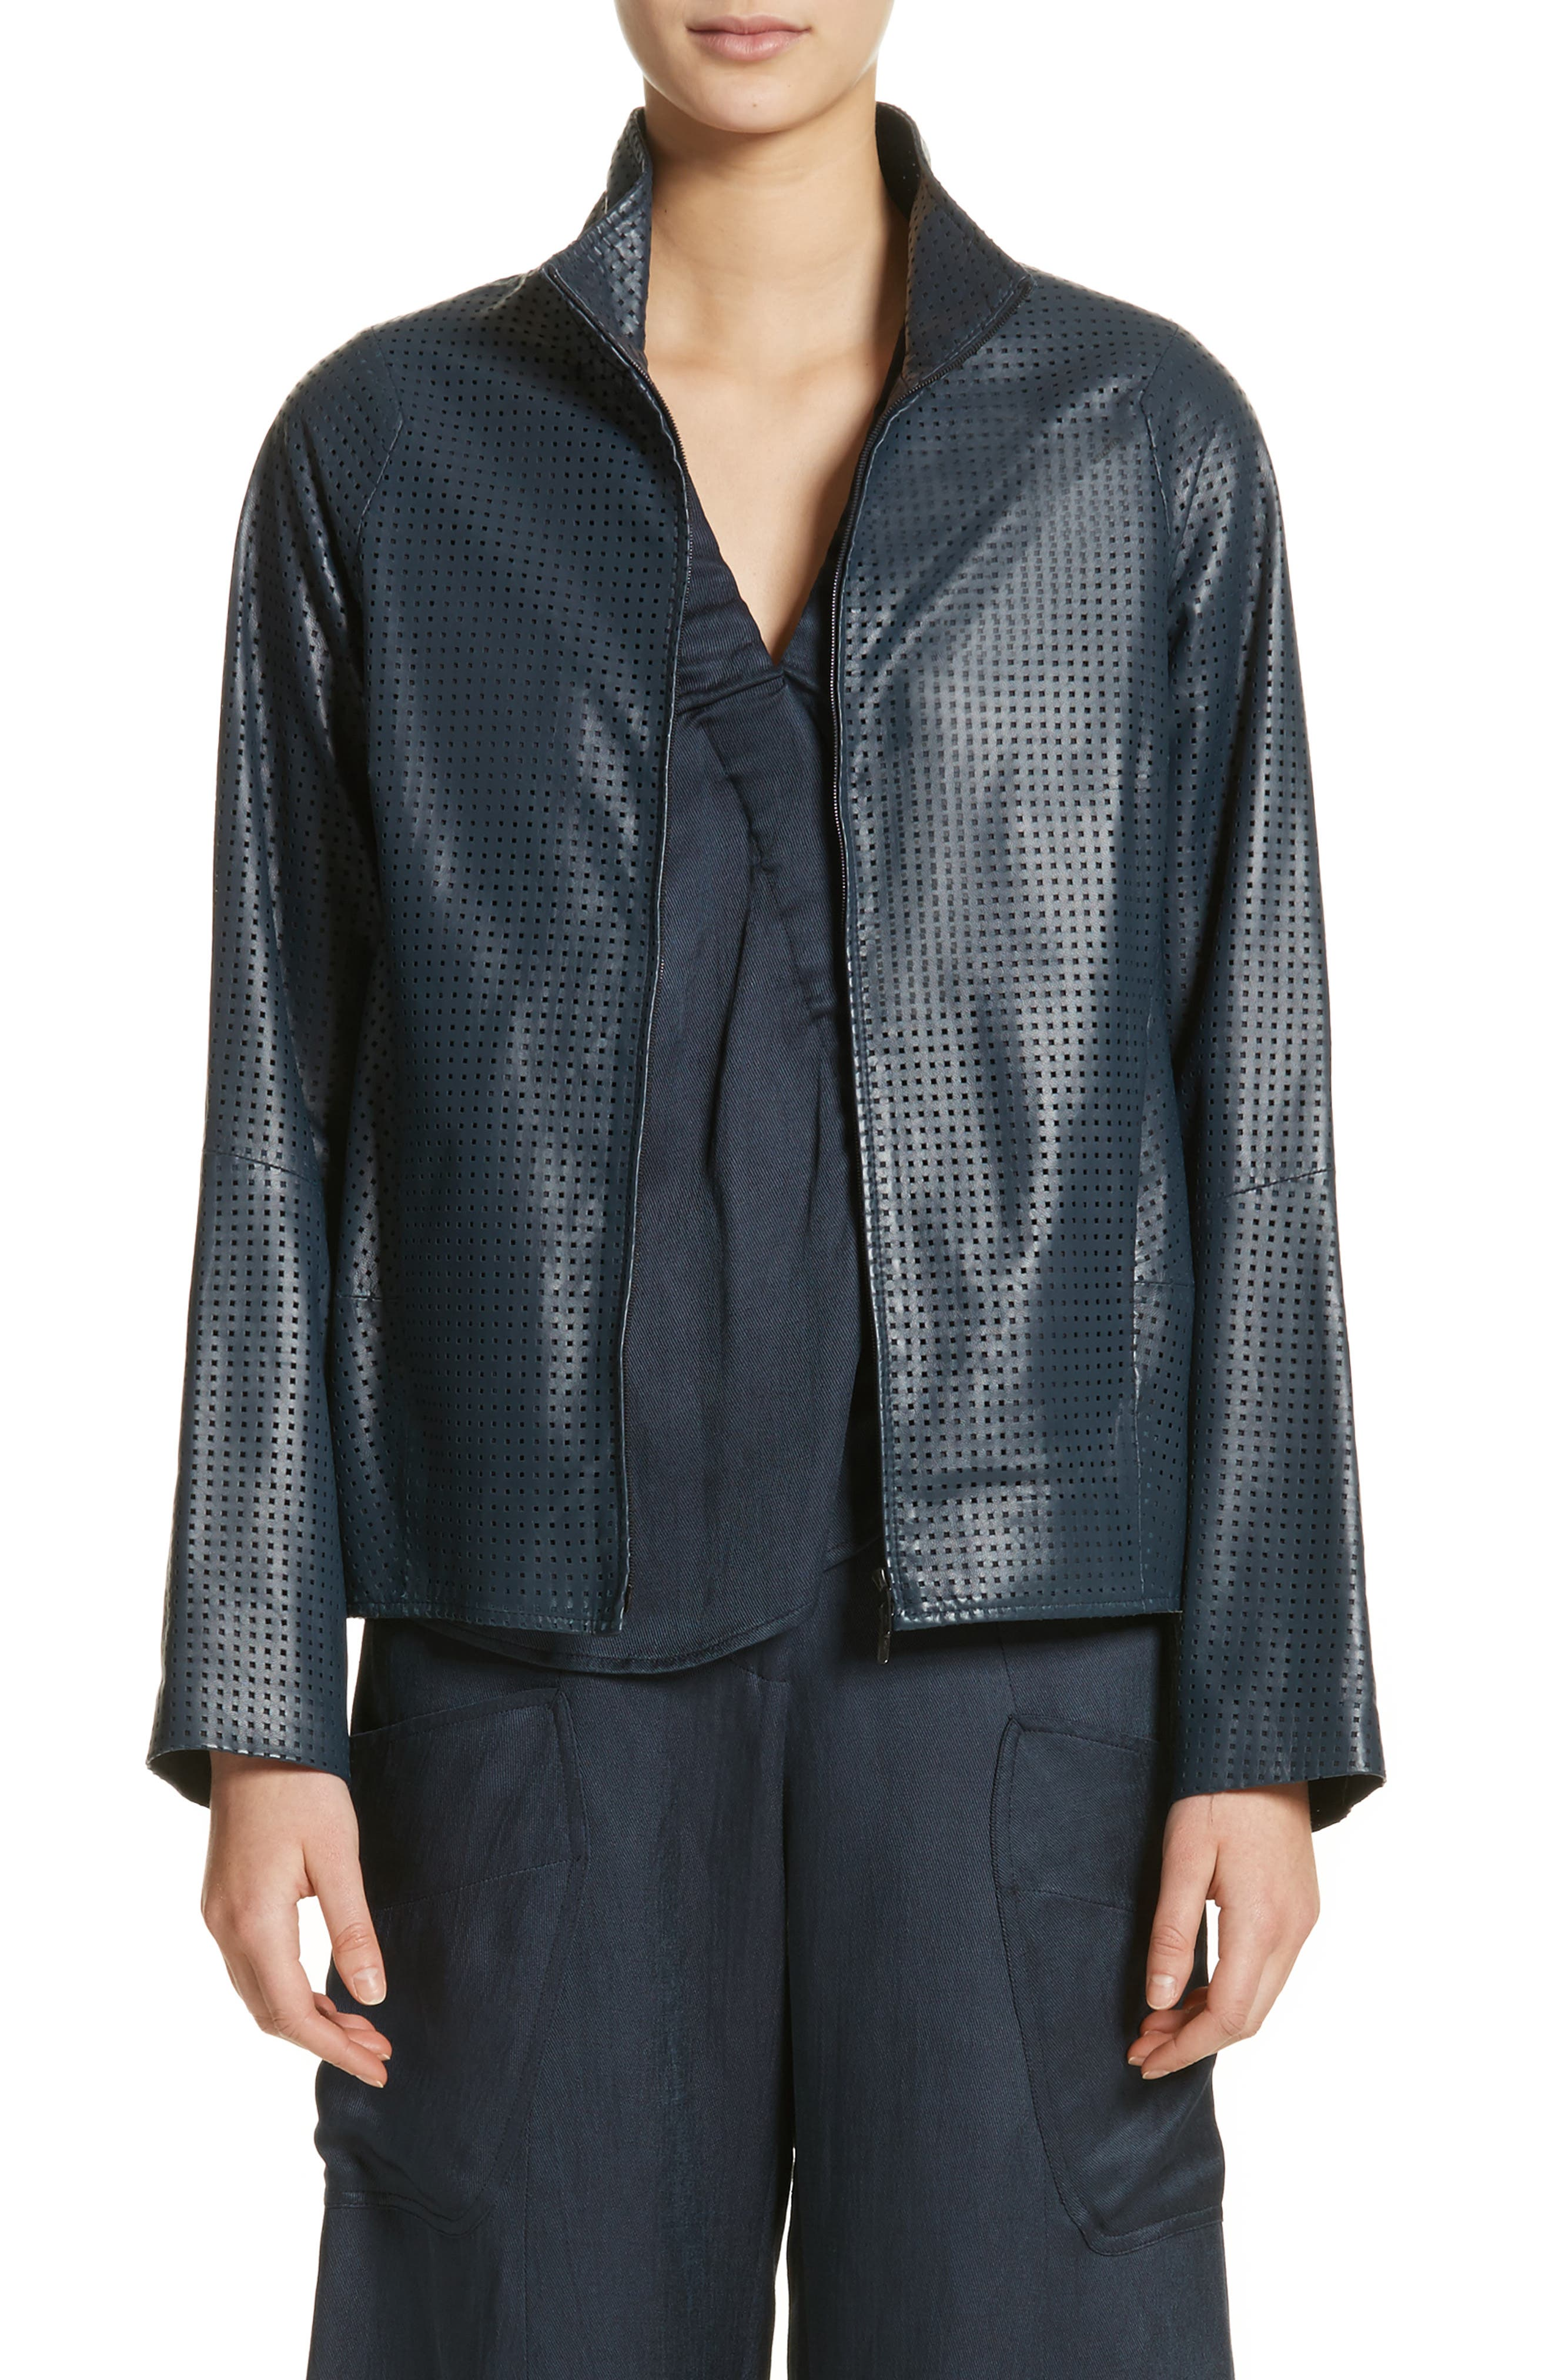 Perforated Nappa Leather Jacket,                             Main thumbnail 1, color,                             Ink Jet